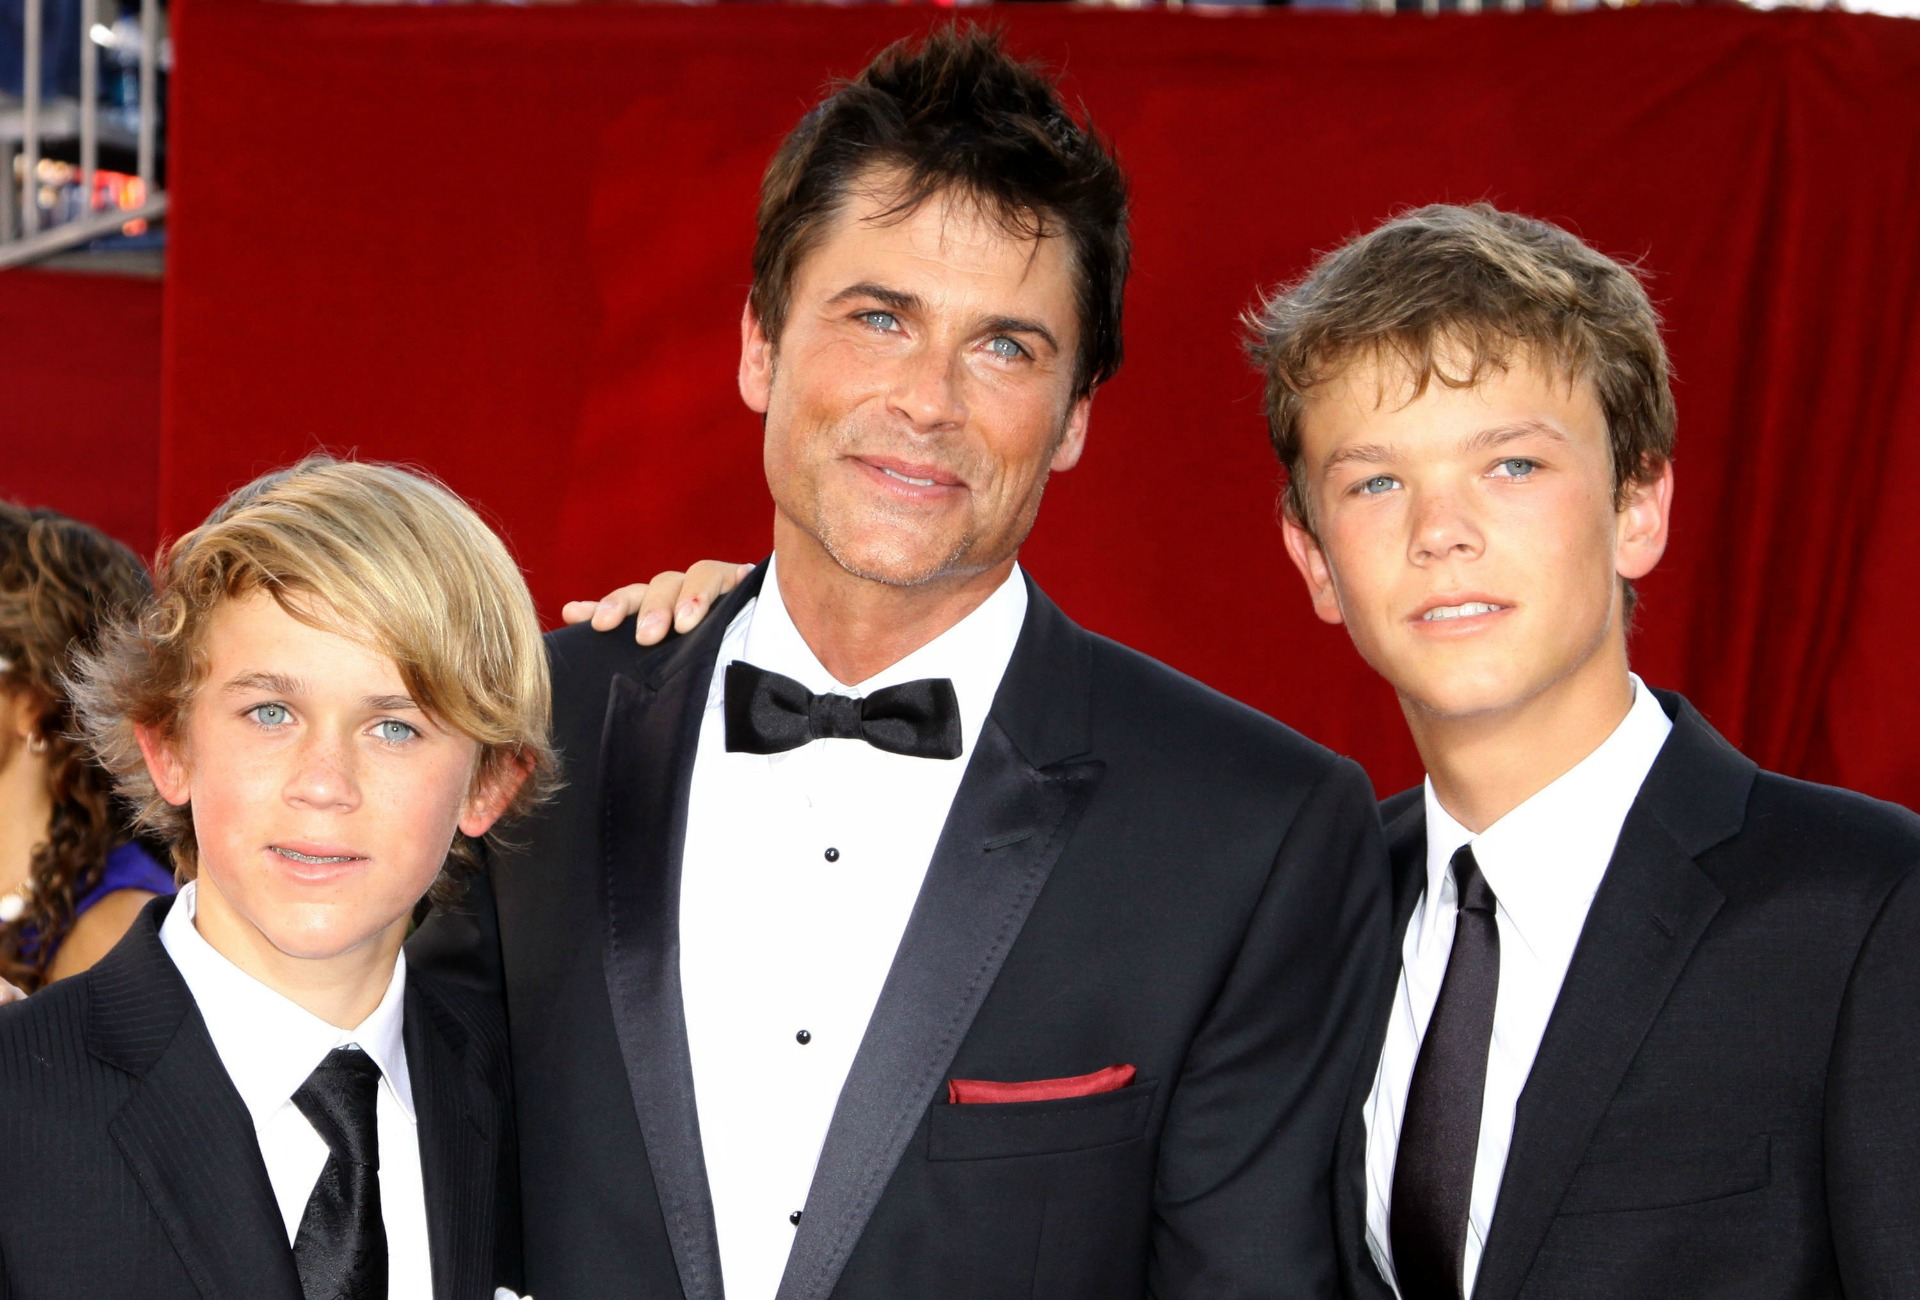 Rob Lowe's abandonment issues